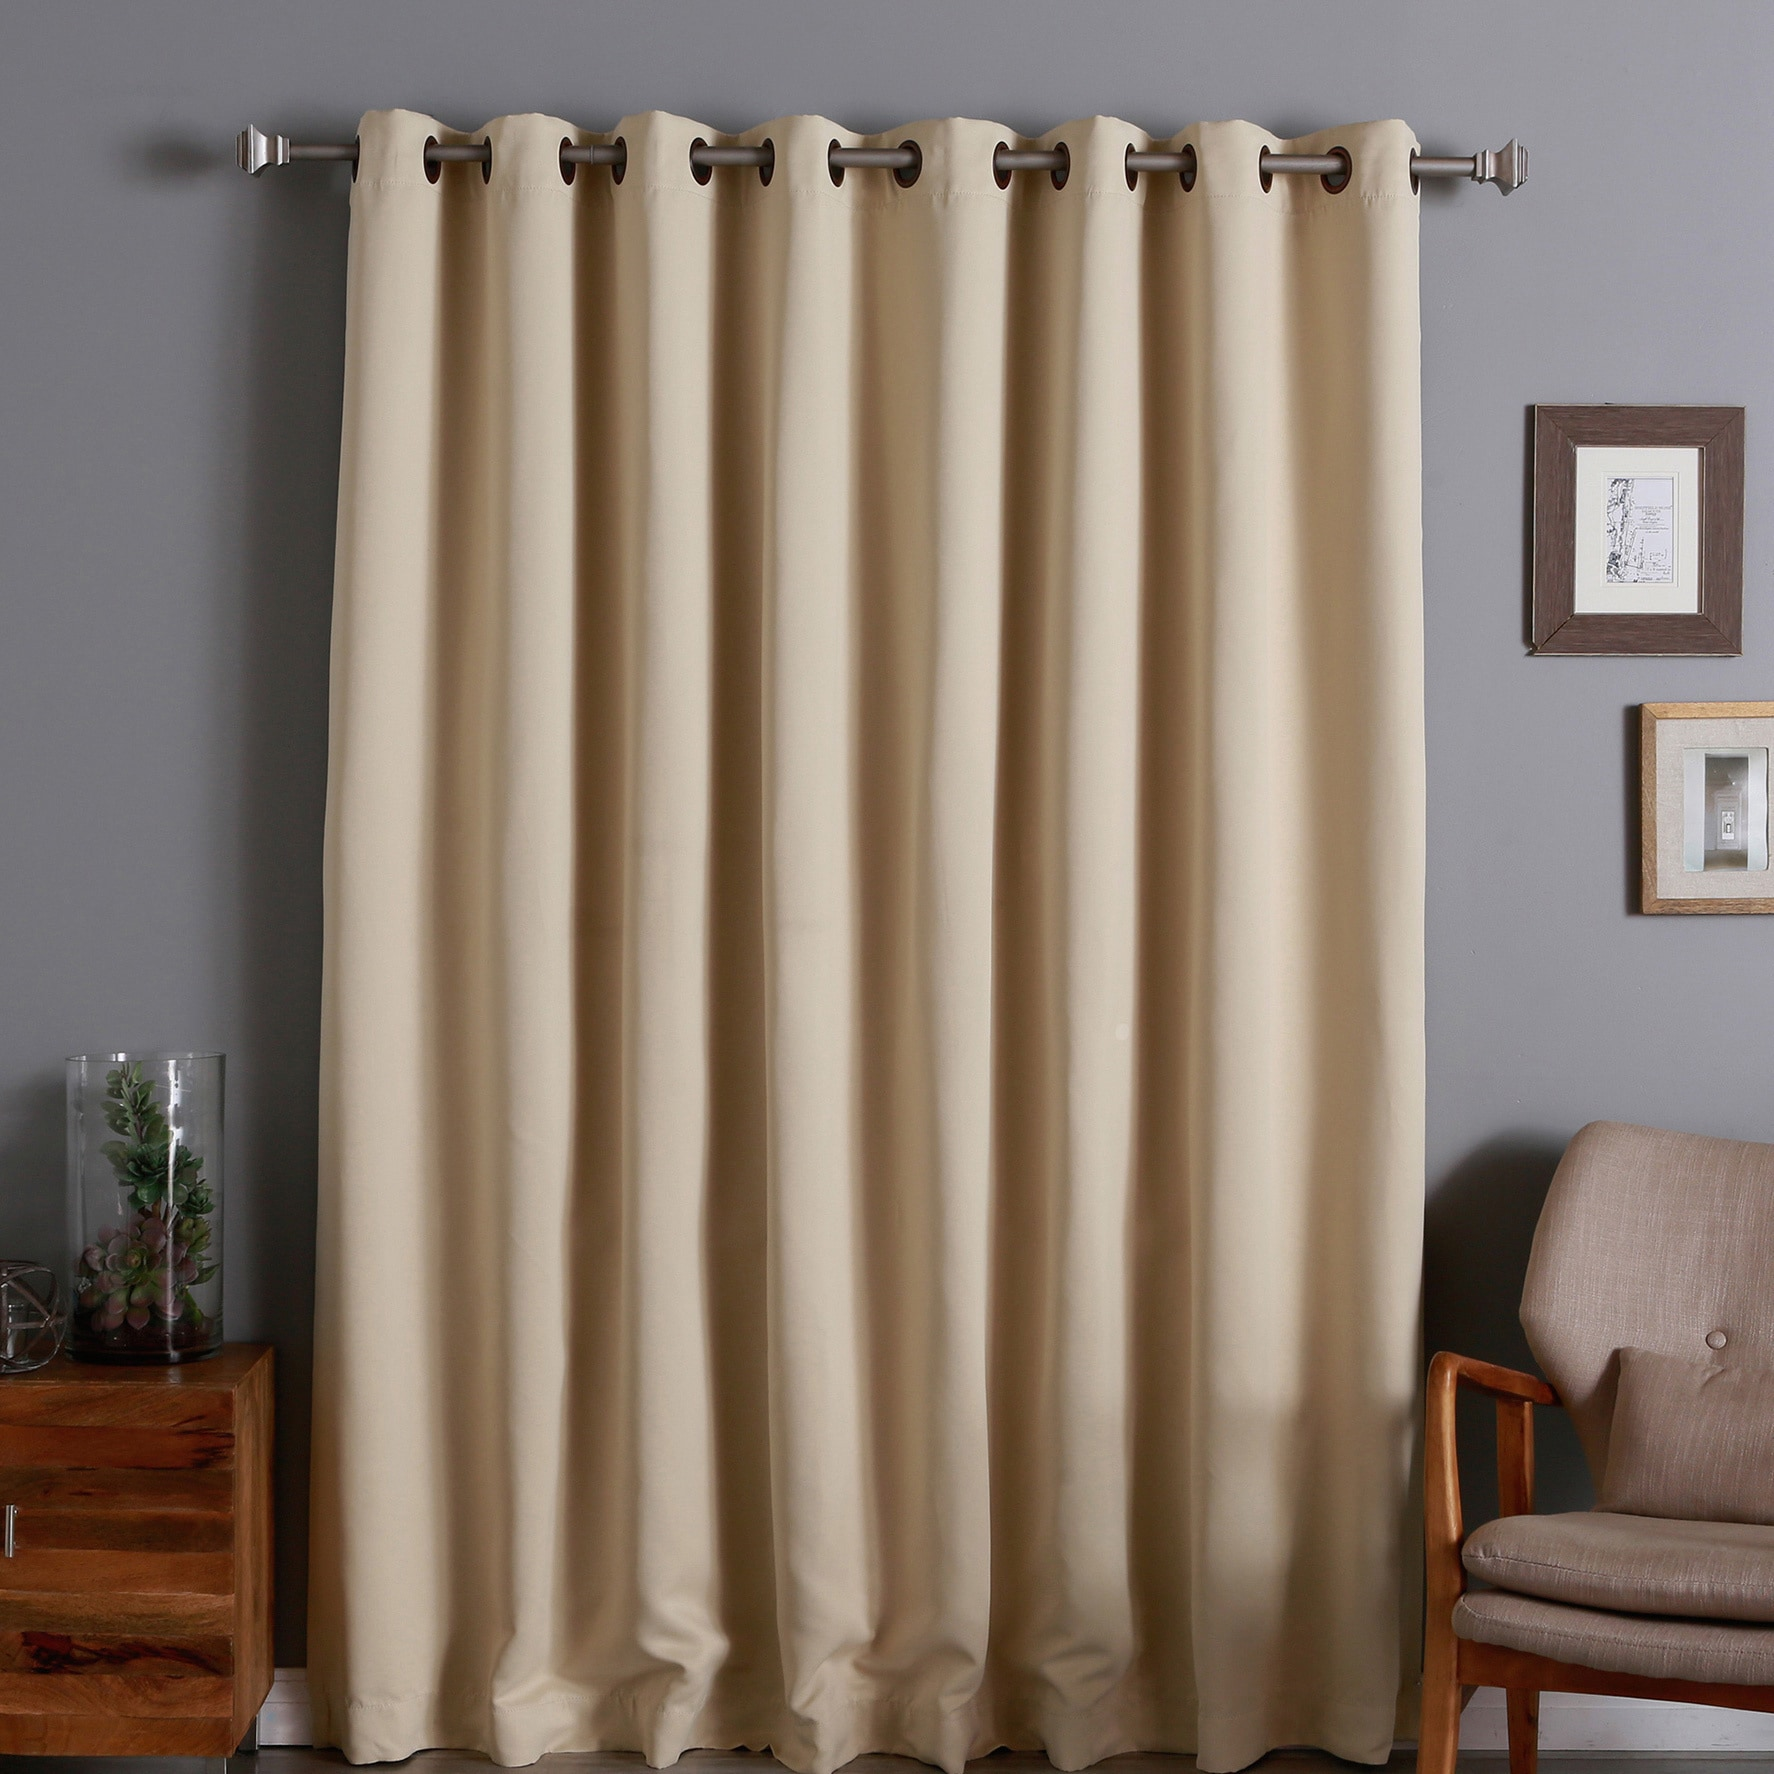 105 Inch Curtains Aurora Home Extra Wide Thermal 100 X 84 Inch Blackout Curtain Panel 100 X 84